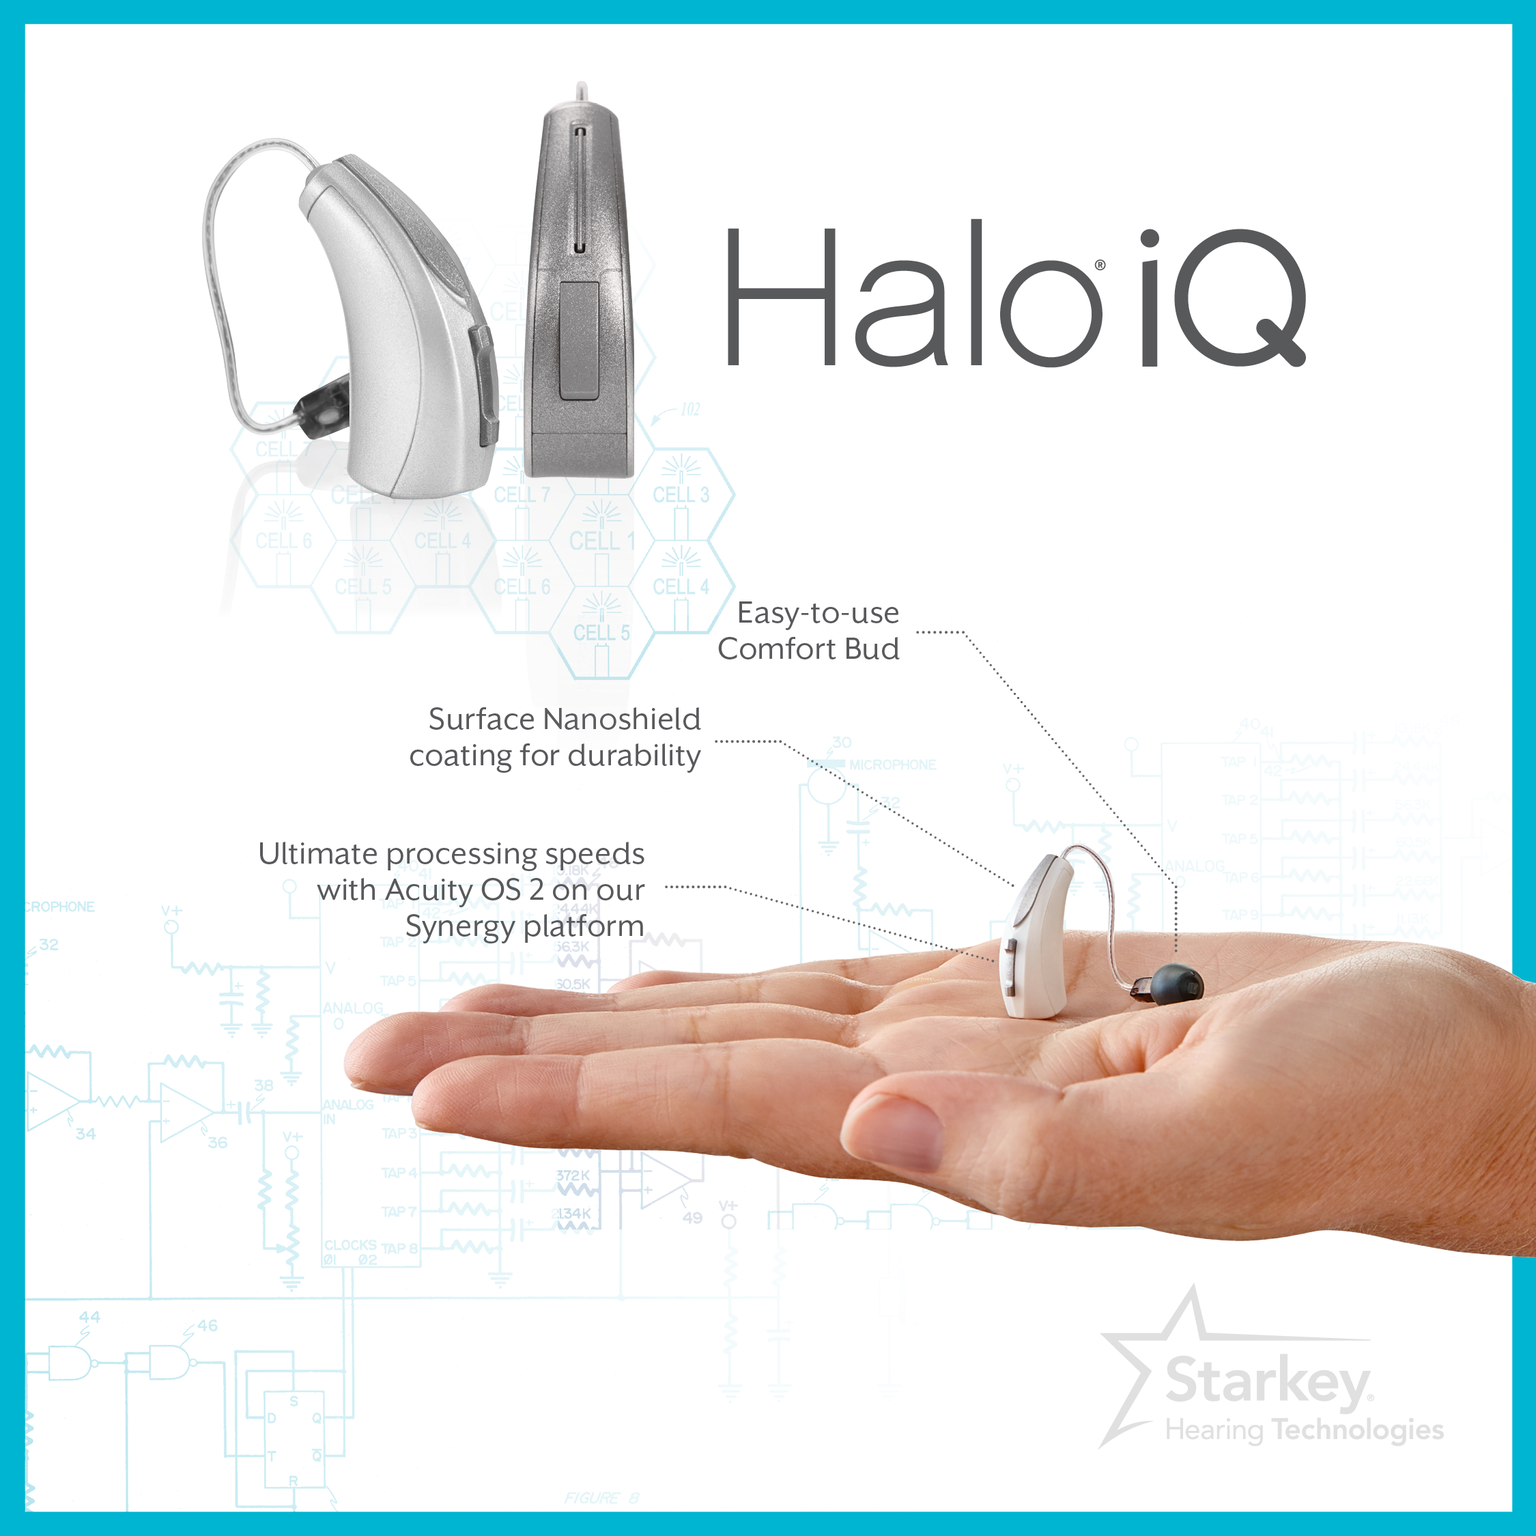 Wireless Hearing Aids Non Vc Wire Center Electronics Schematic Diagram 8211 Max2659 Gps Gnss Low Noise Amplifier Starkey Technologies Launches Iq Product Lines Review Rh Hearingreview Com Aid Accessories Nokia